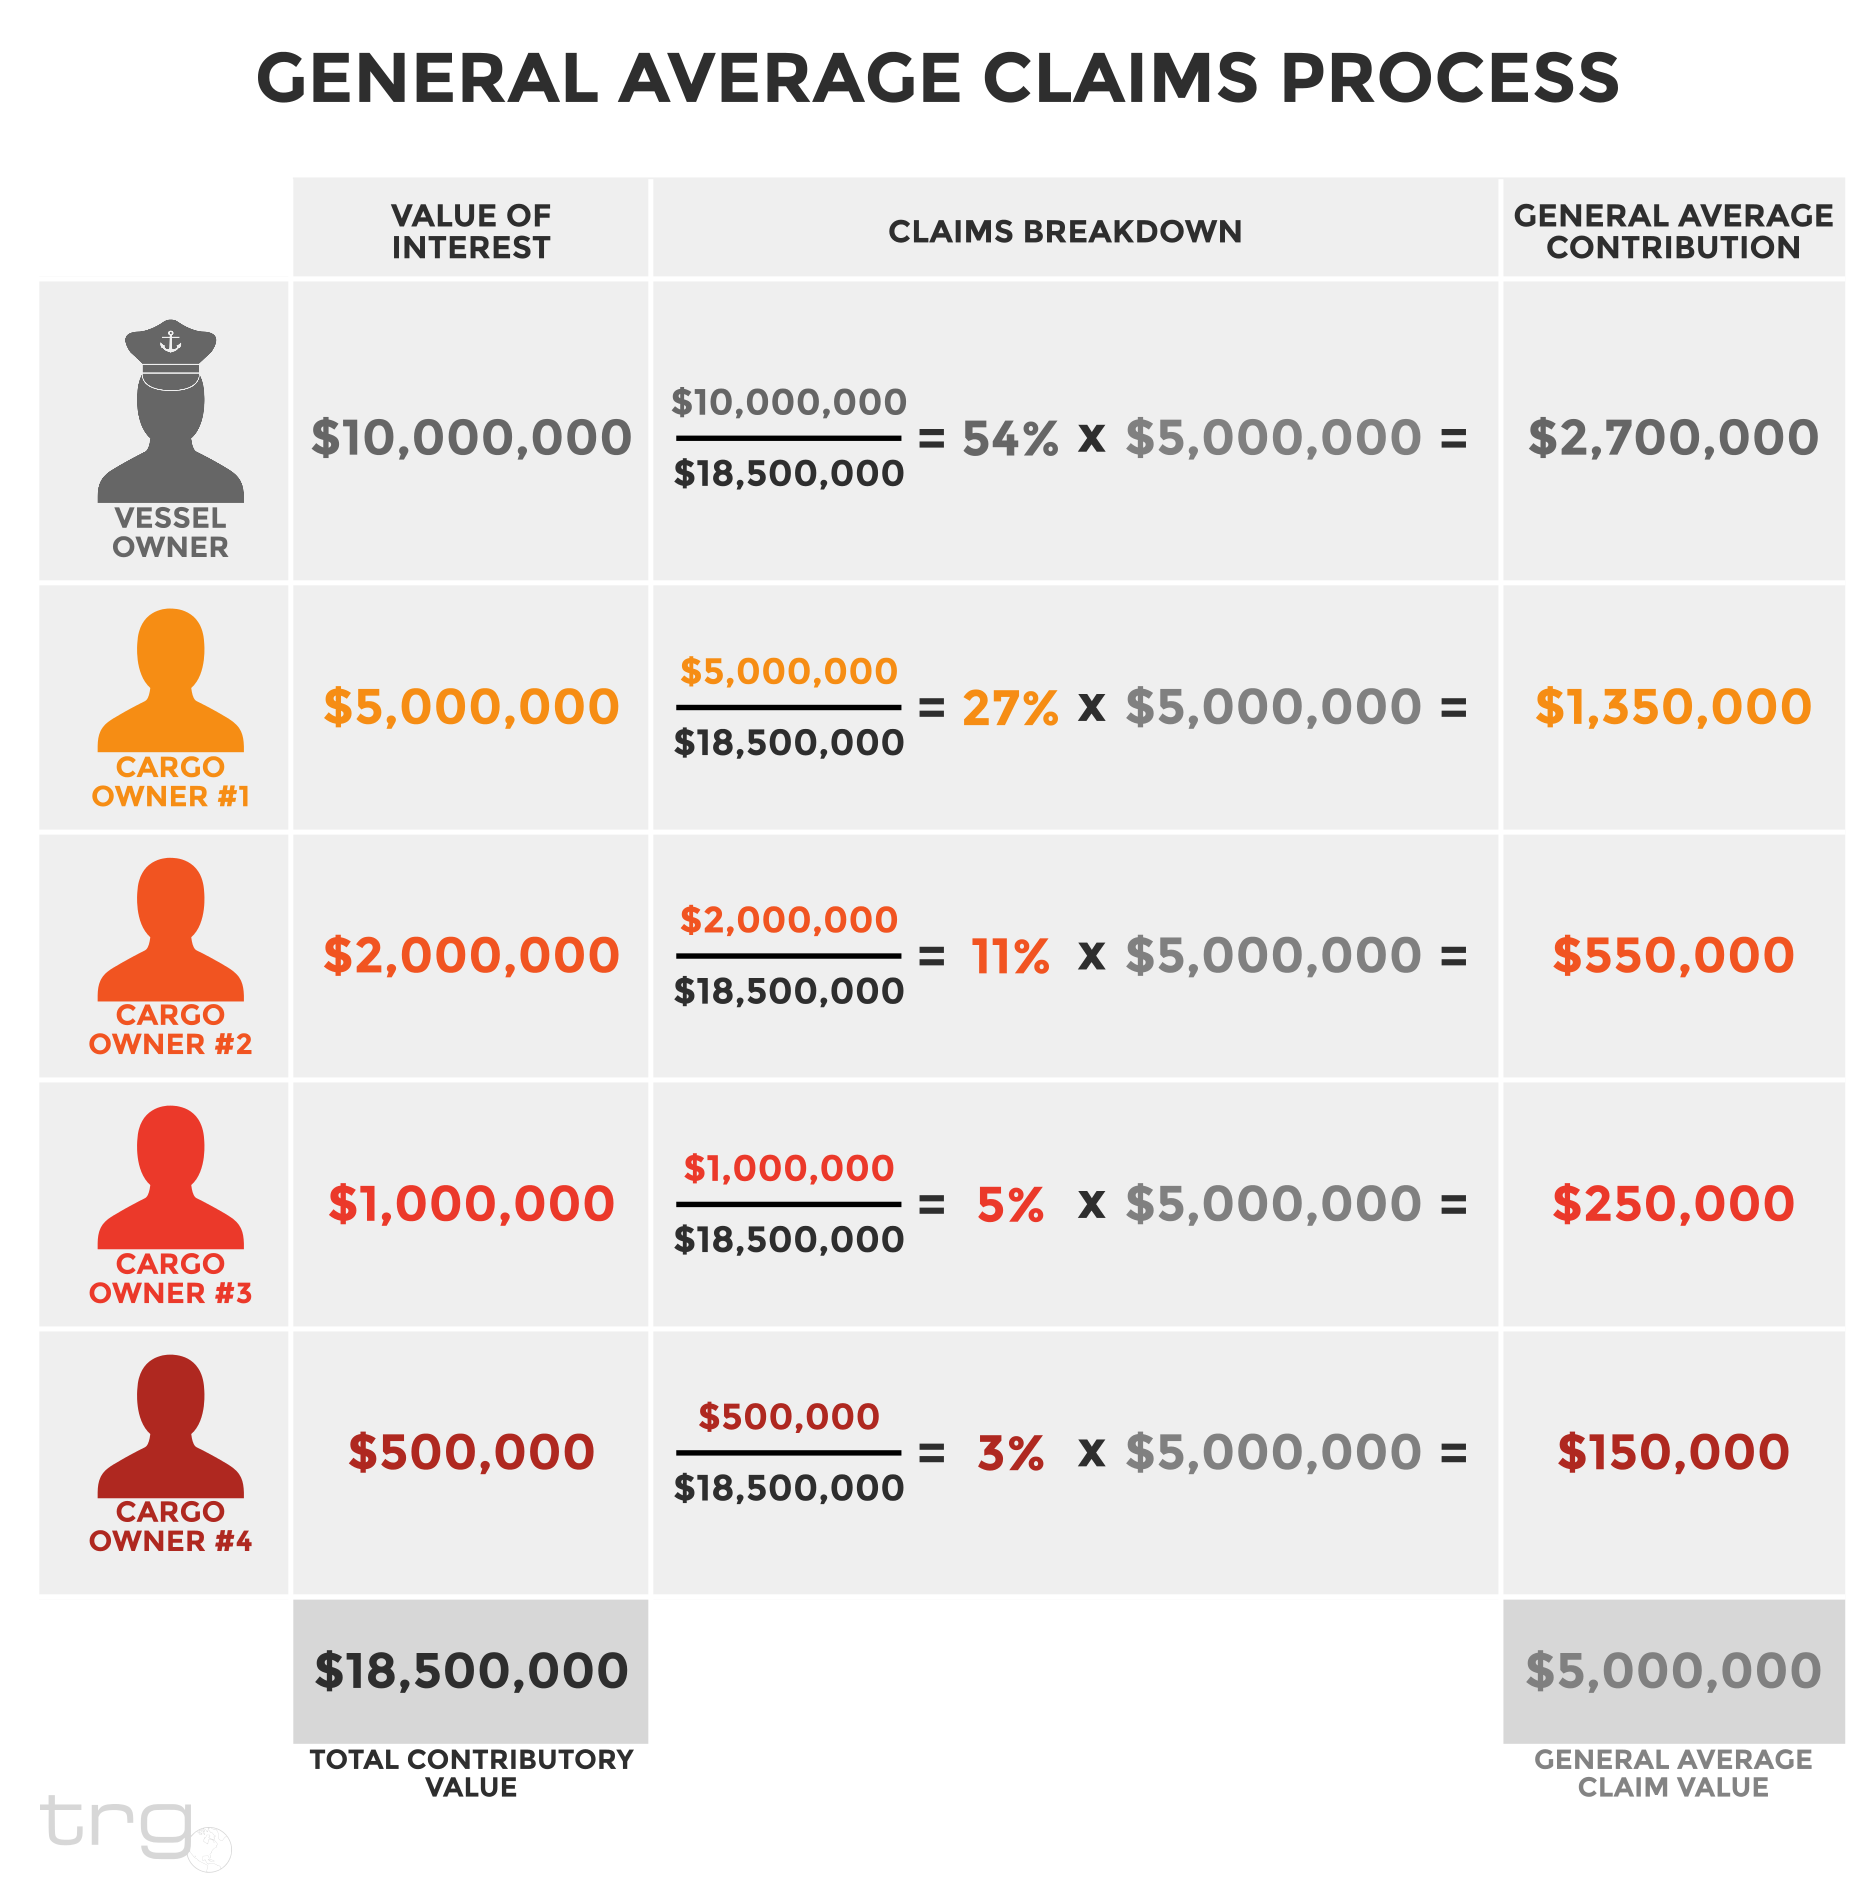 Trade Risk Guaranty provides a breakdown of the General Average claims process.